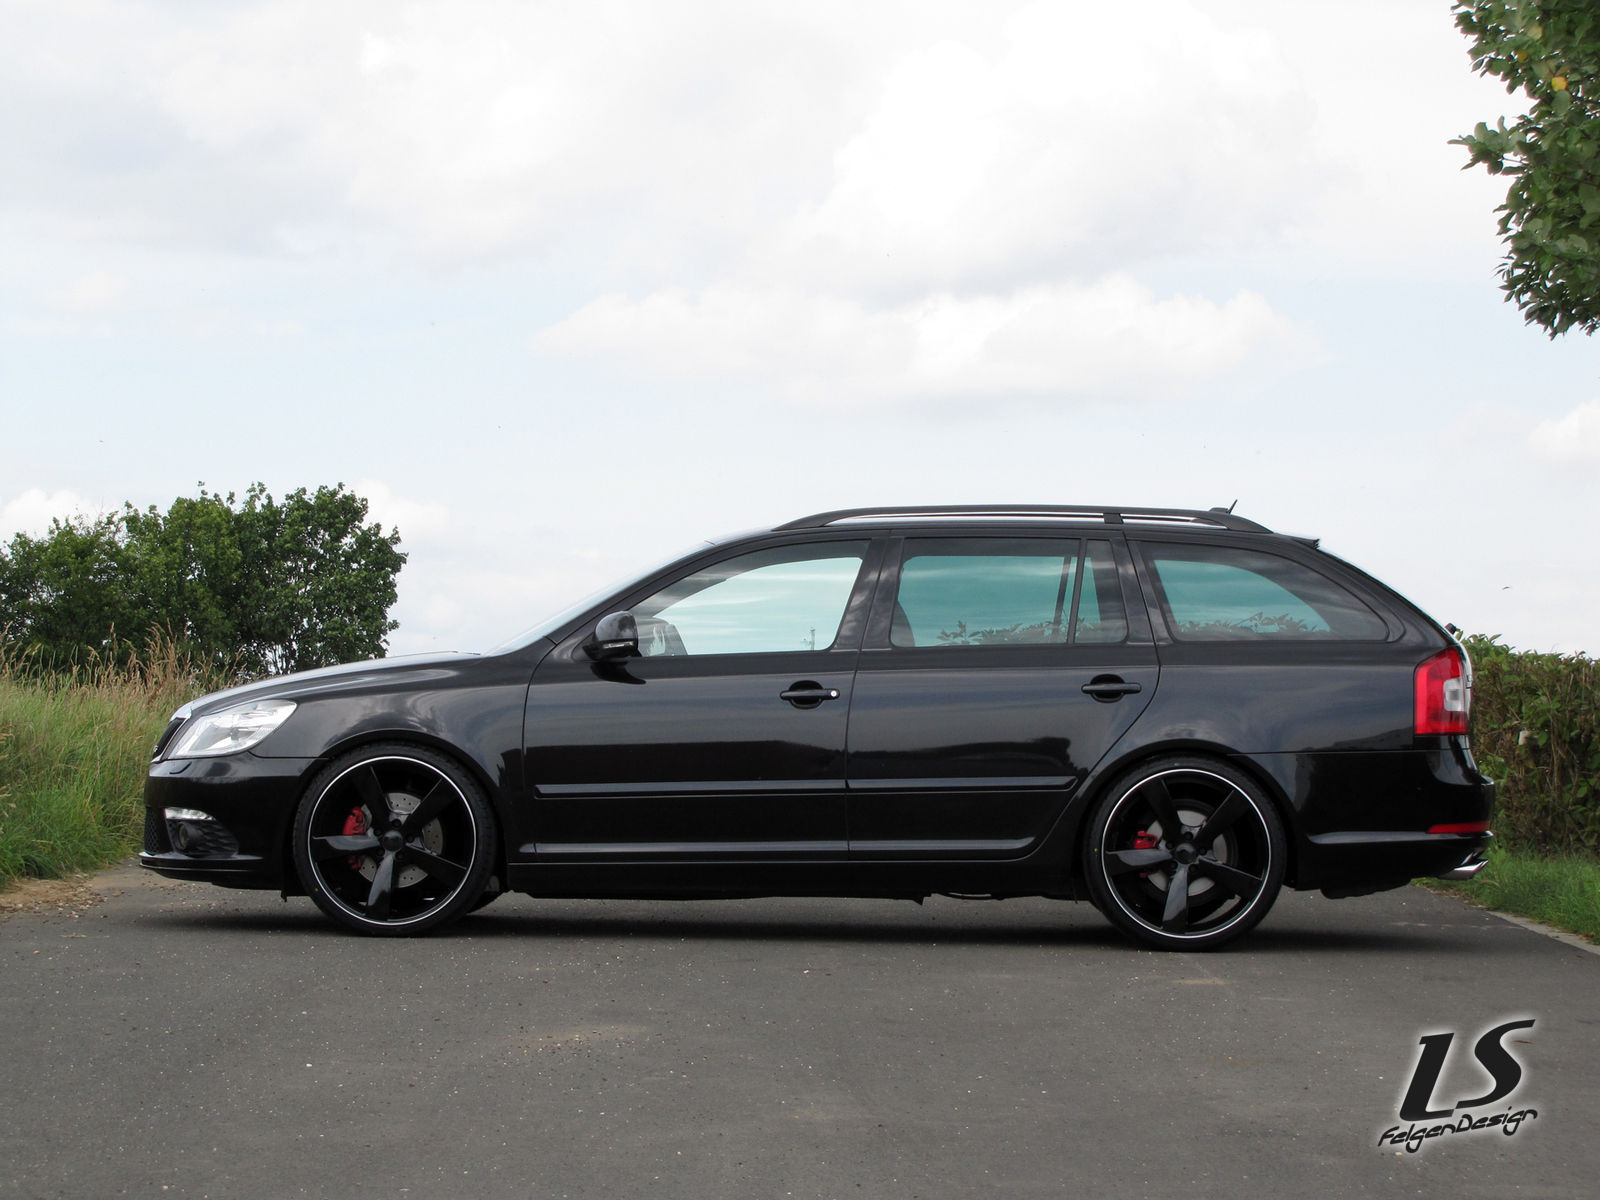 skoda octavia rs typ 1z tuning felgen alufelgen. Black Bedroom Furniture Sets. Home Design Ideas